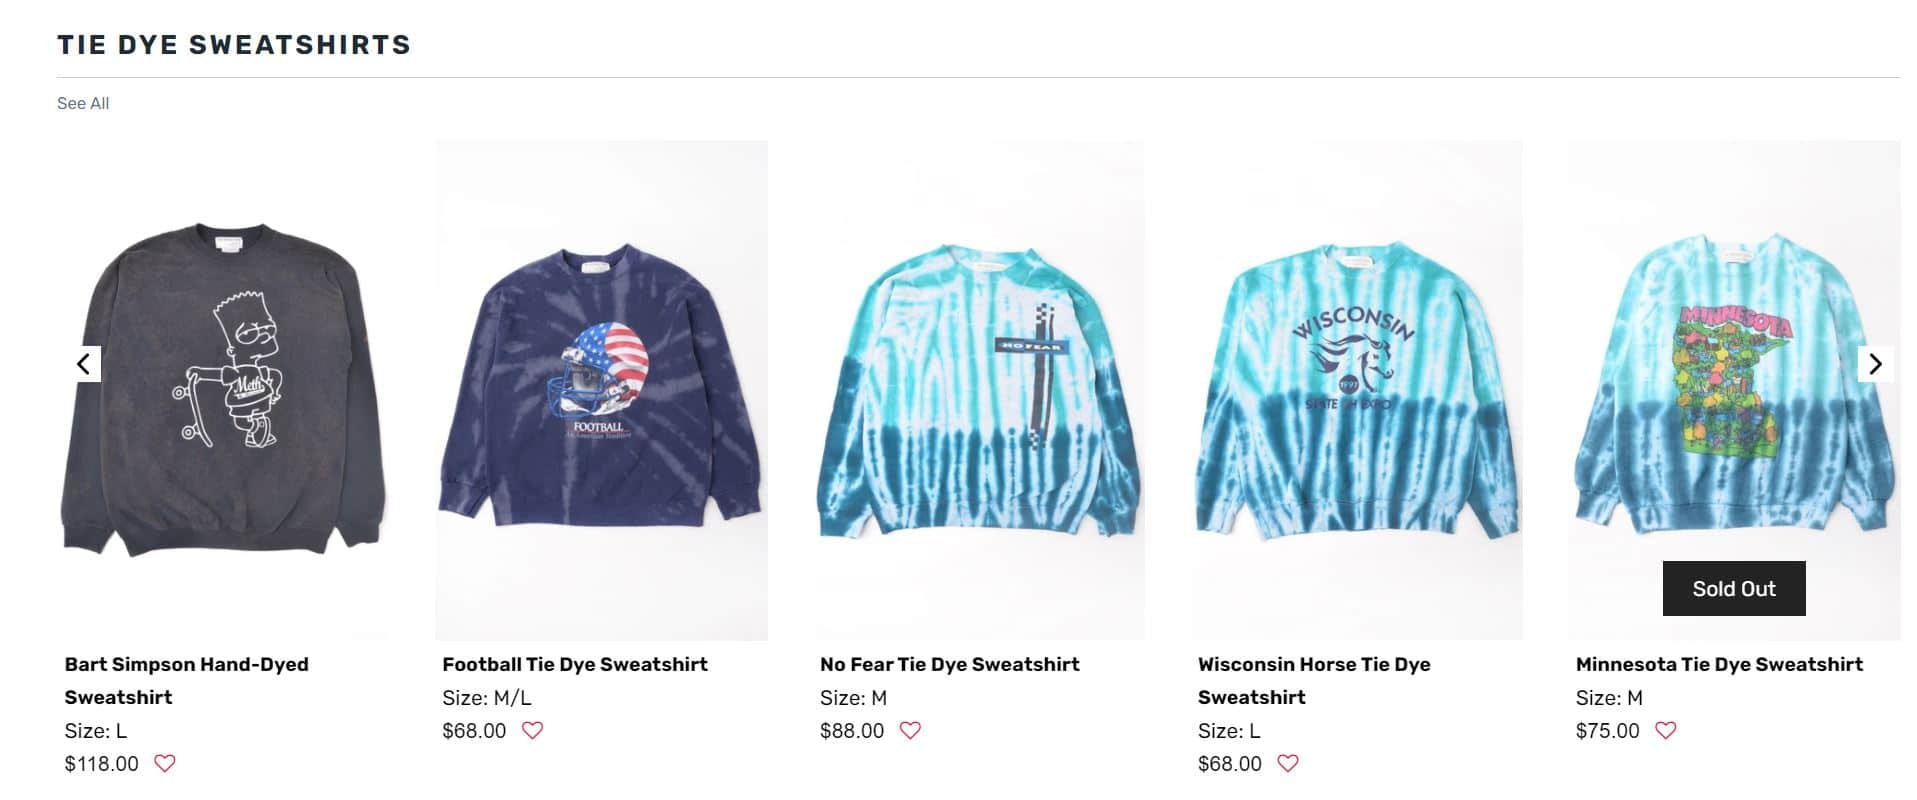 11 Of The Best Online Thrift Stores in 2021